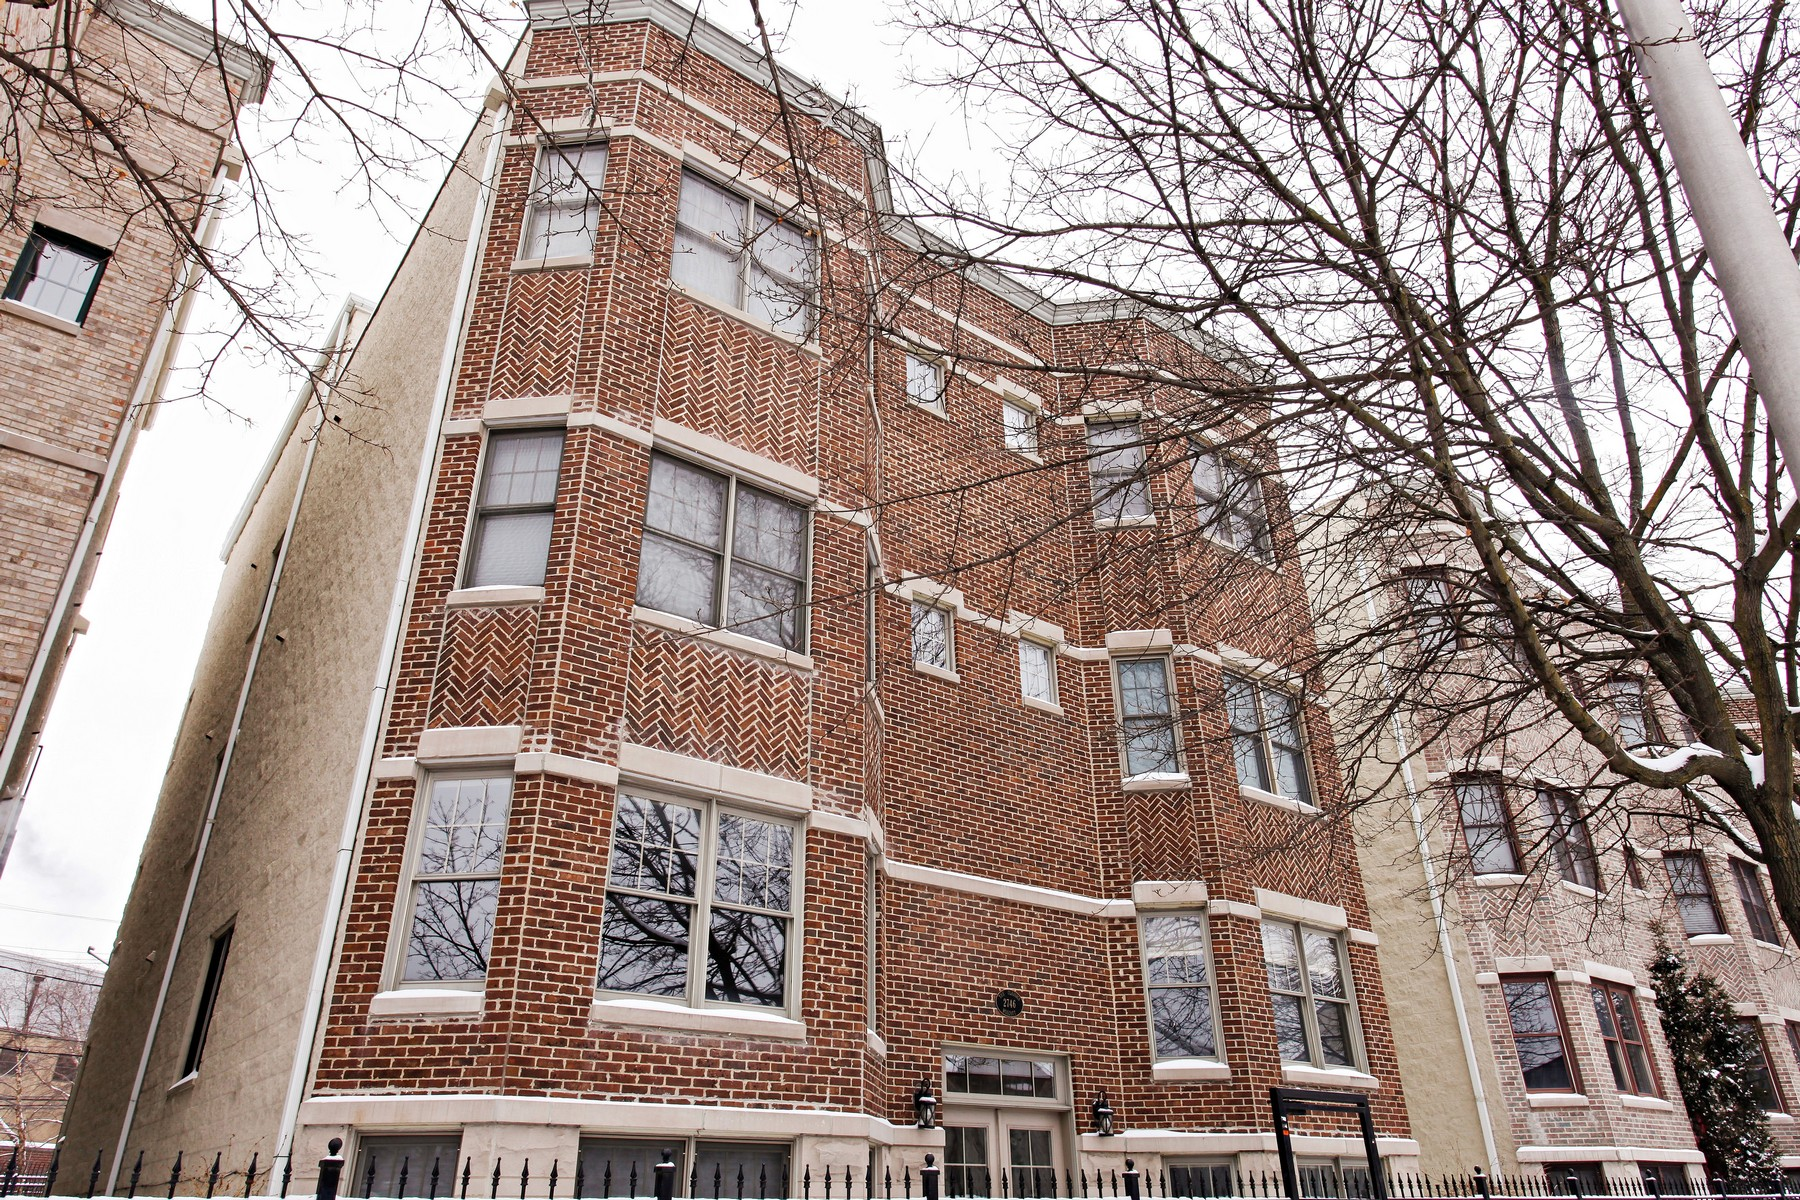 Duplex for Sale at Fabulous and Spacious Lincoln Park Three Bedroom Duplex 2746 N Wolcott Avenue Unit 1N, Lincoln Park, Chicago, Illinois, 60614 United States